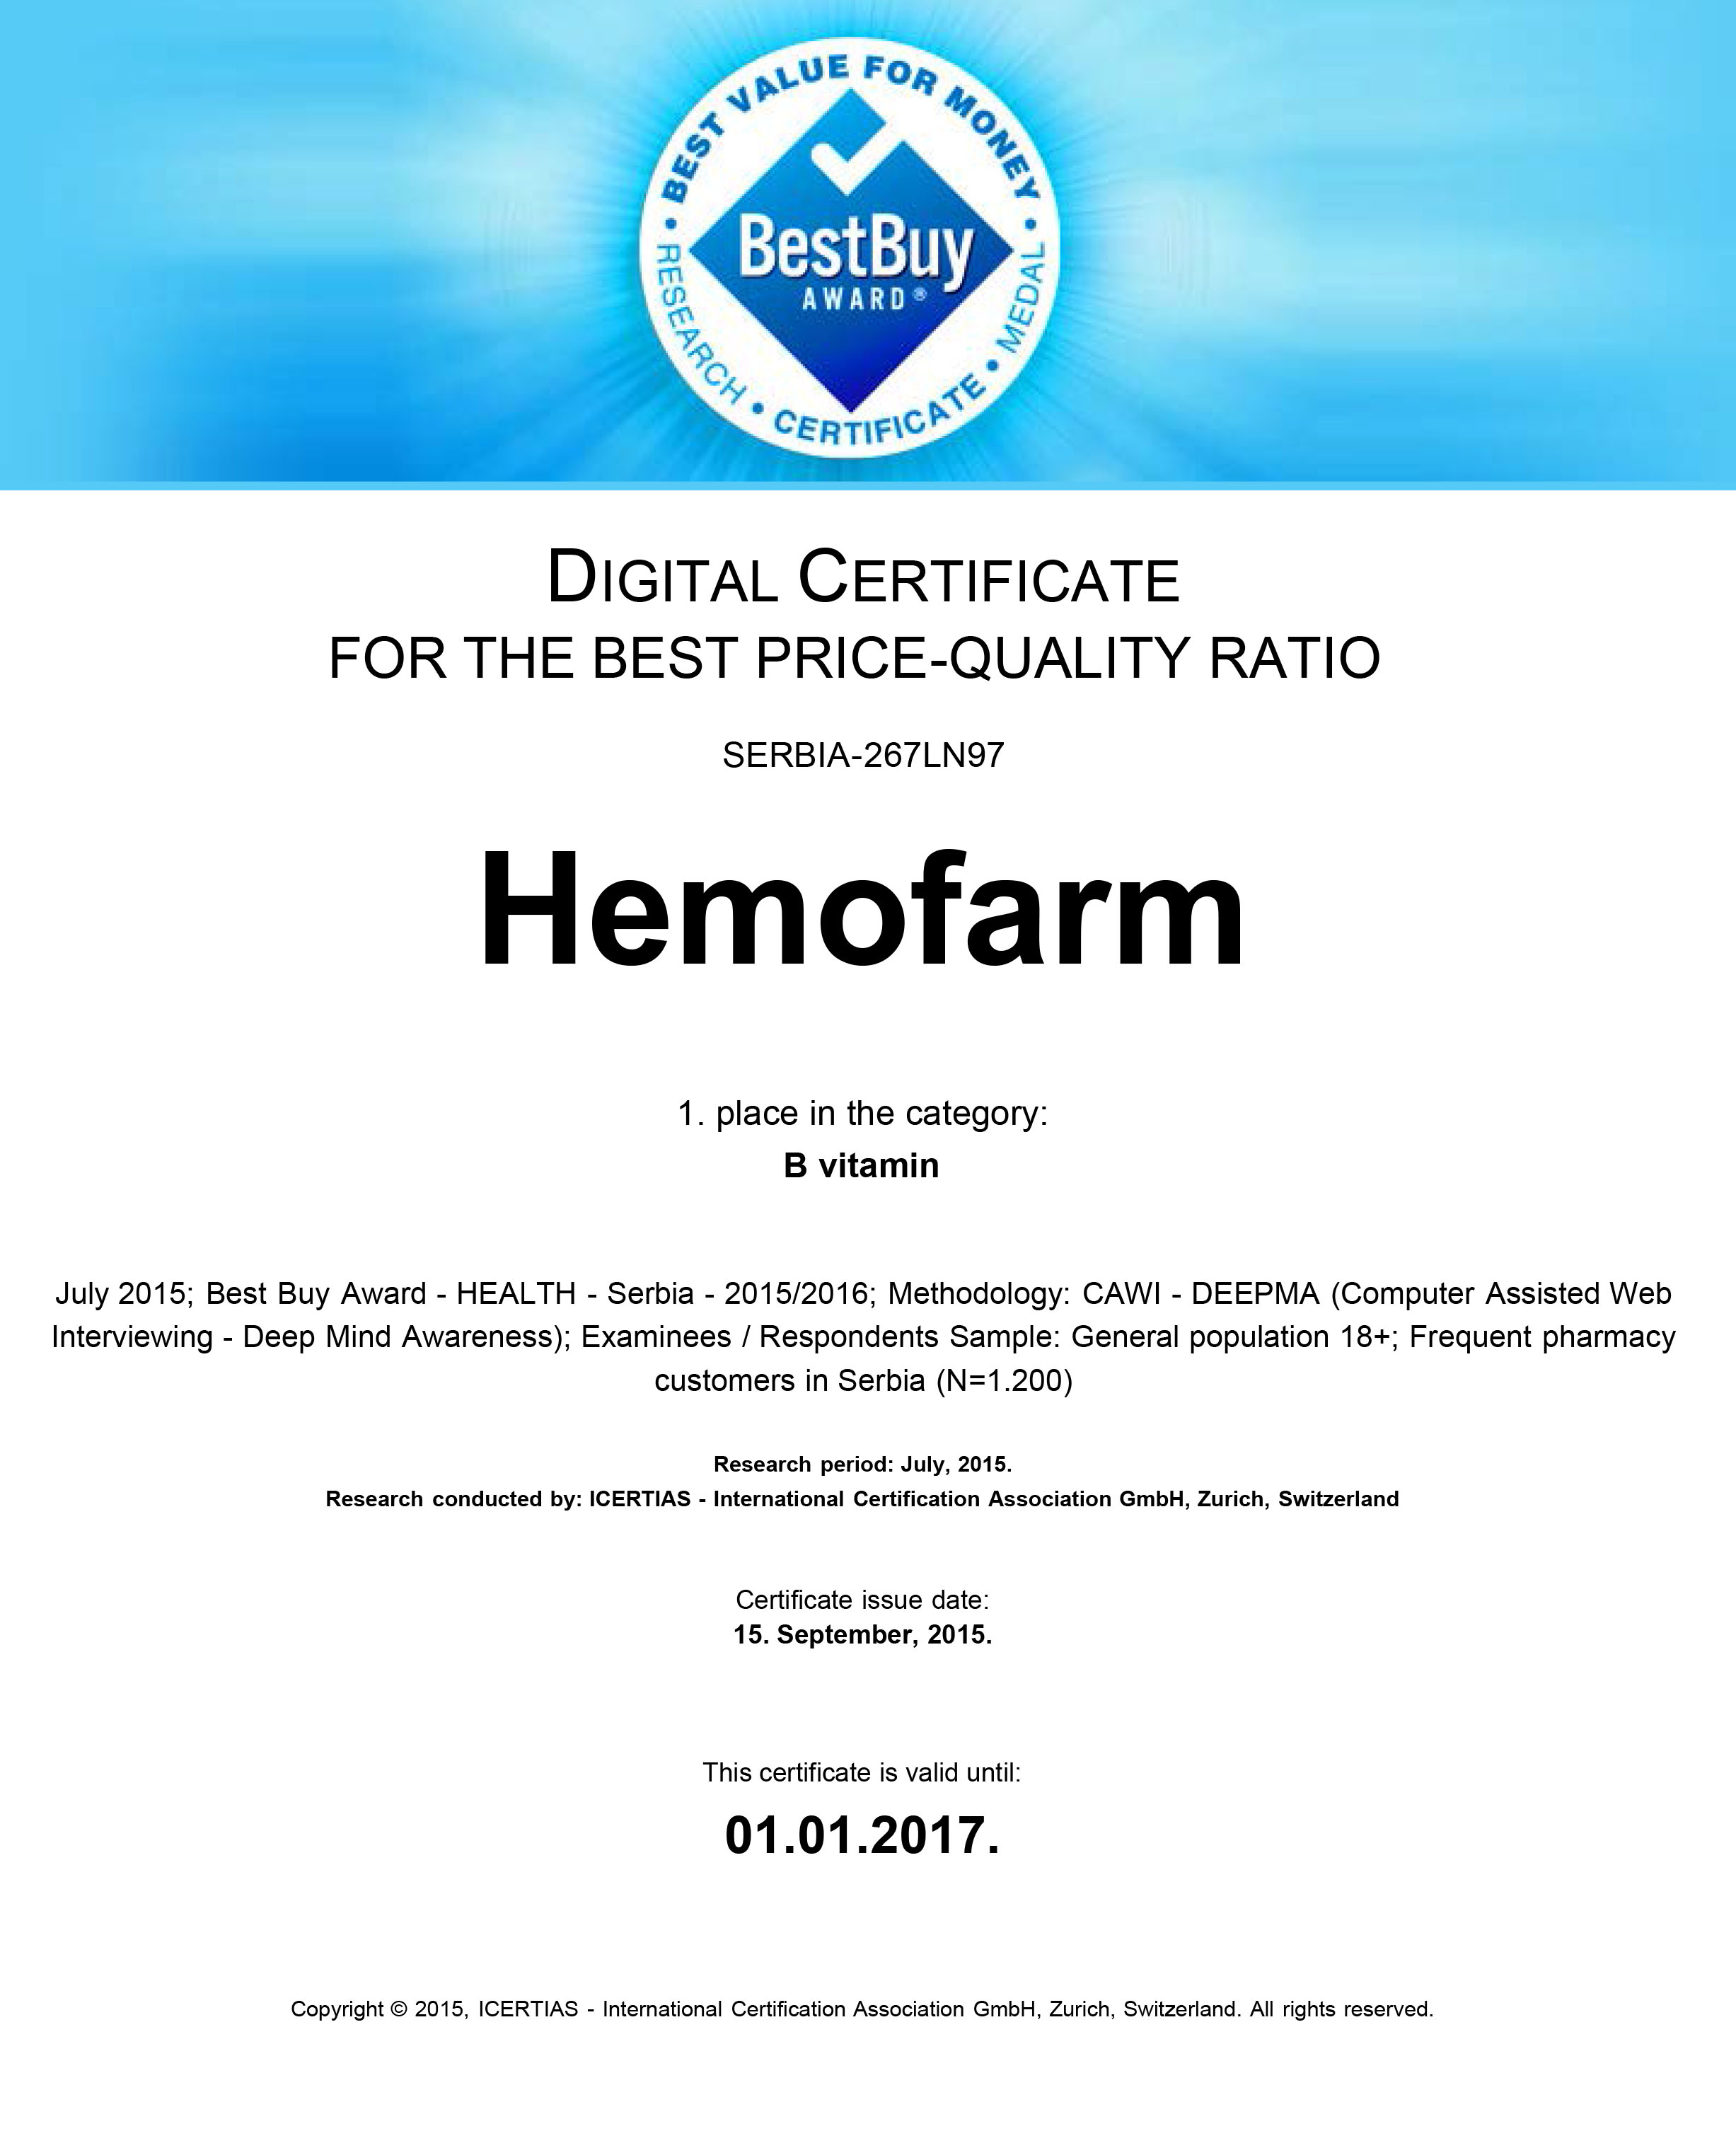 'BEST BUY AWARD' – Consumers Awarded Hemofarm for the Best Price-to-Quality Ratio